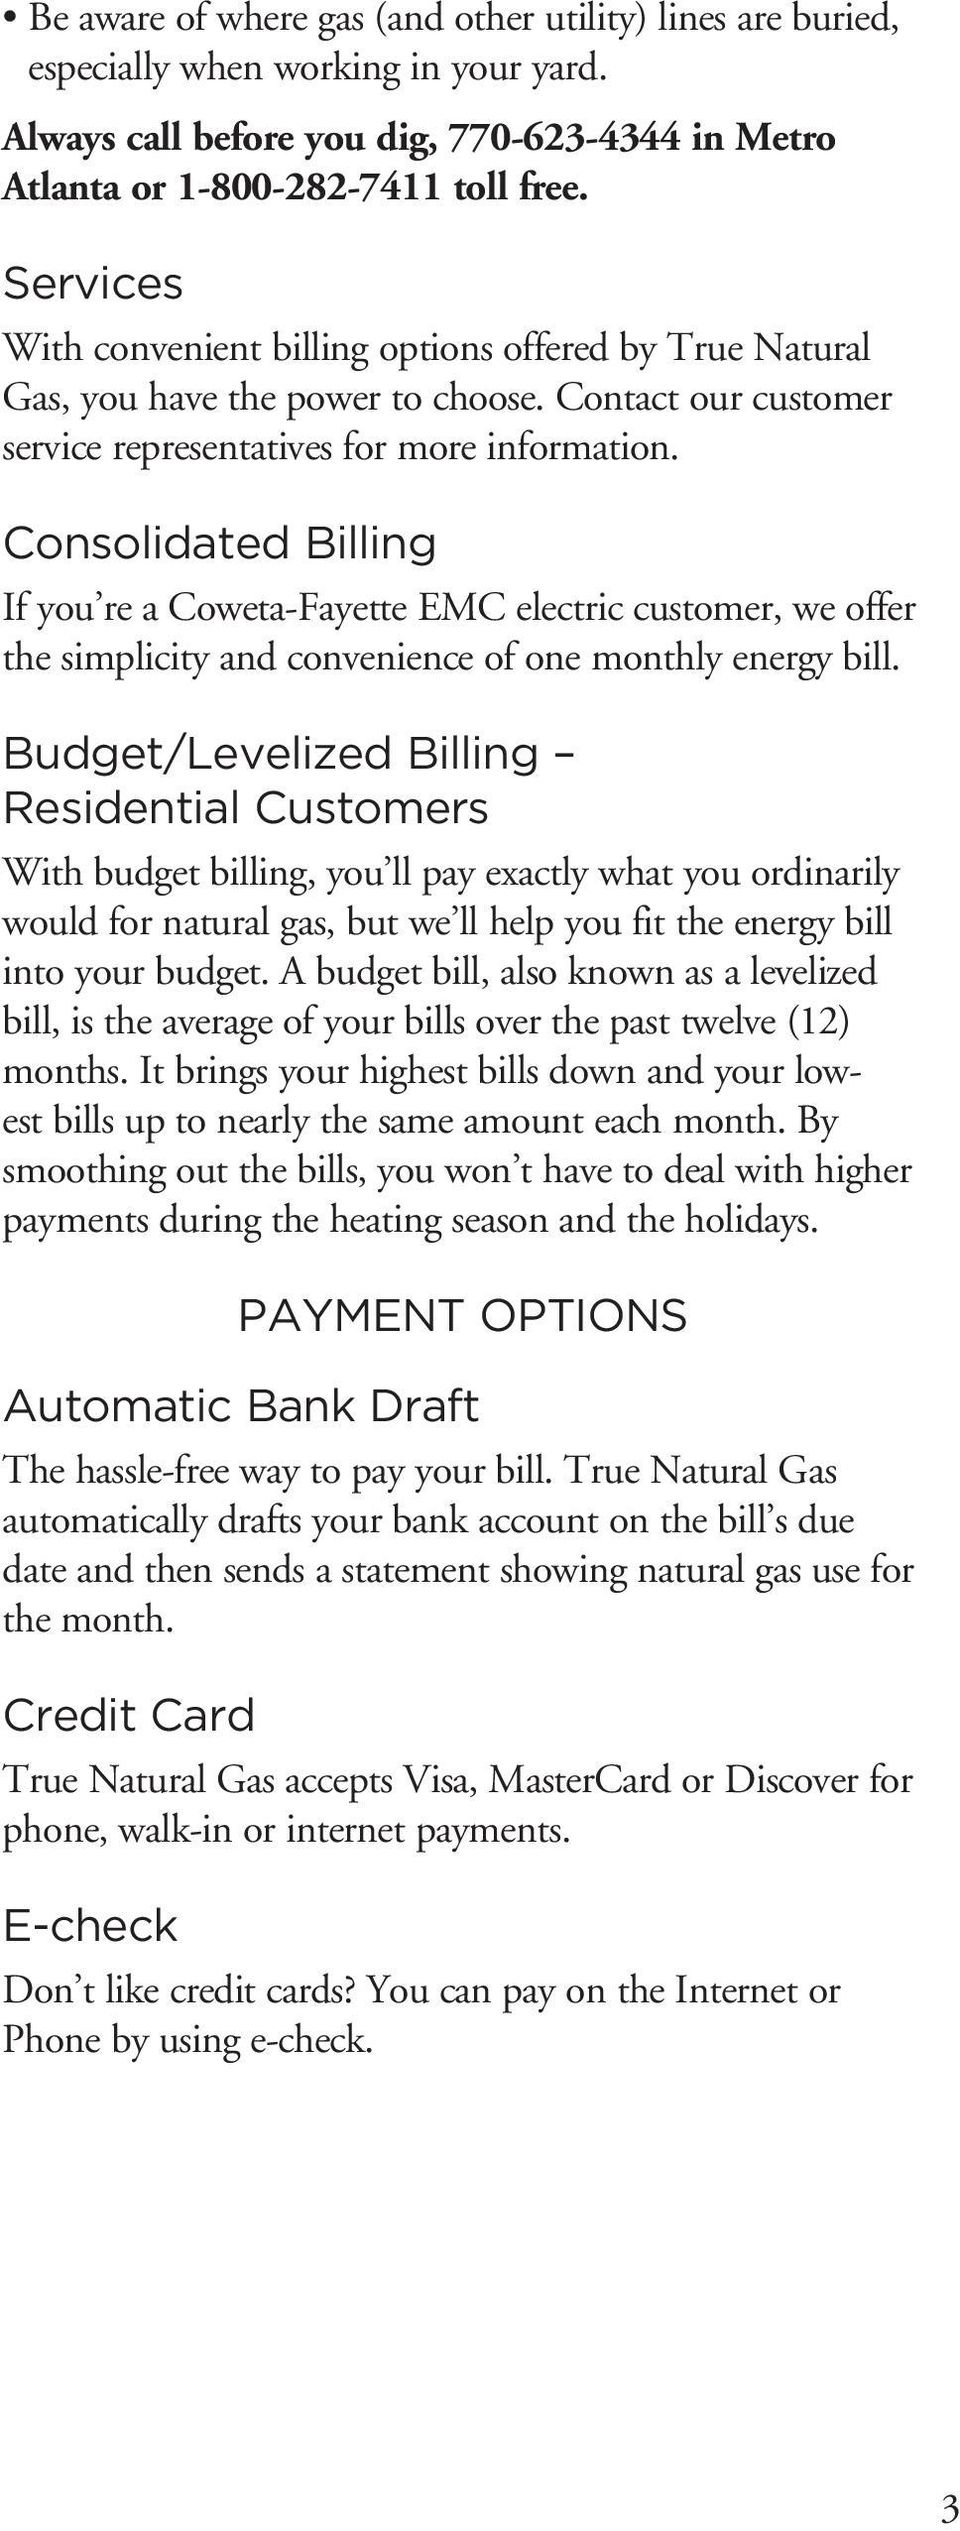 Consolidated Billing If you re a Coweta-Fayette EMC electric customer, we offer the simplicity and convenience of one monthly energy bill.